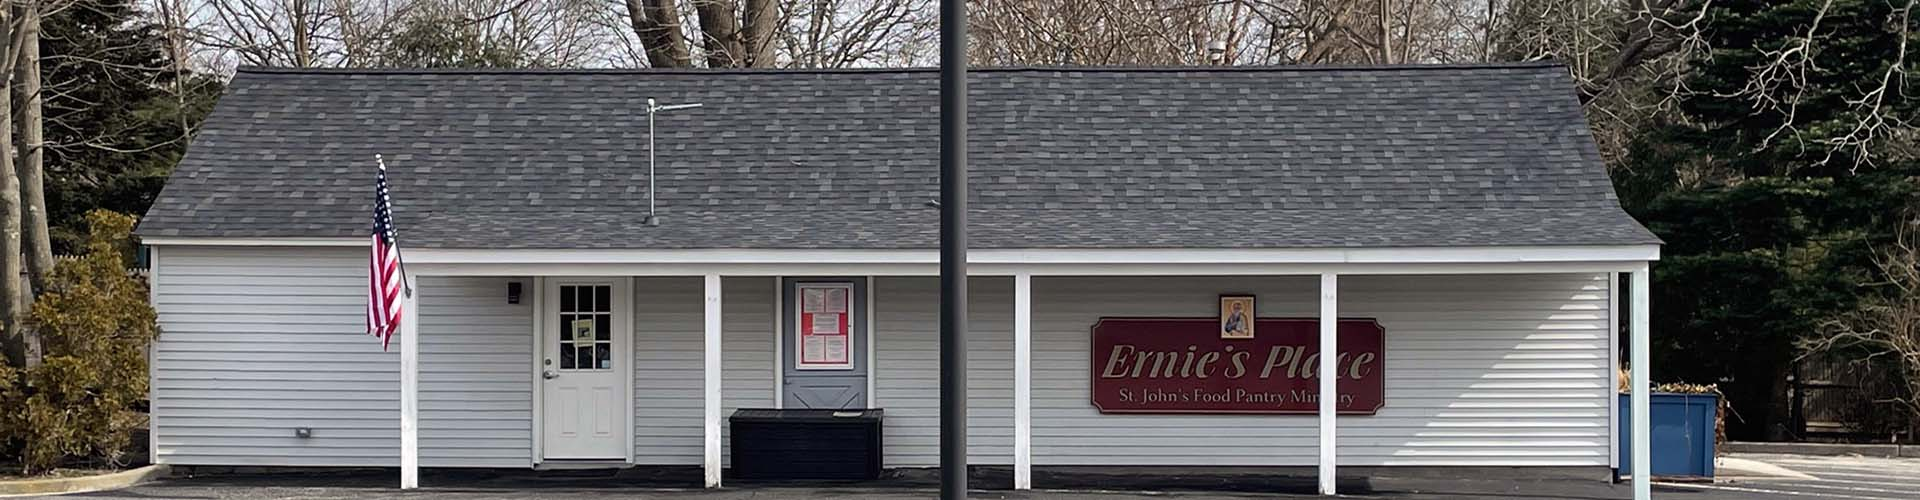 Ernie's Place Food Pantry